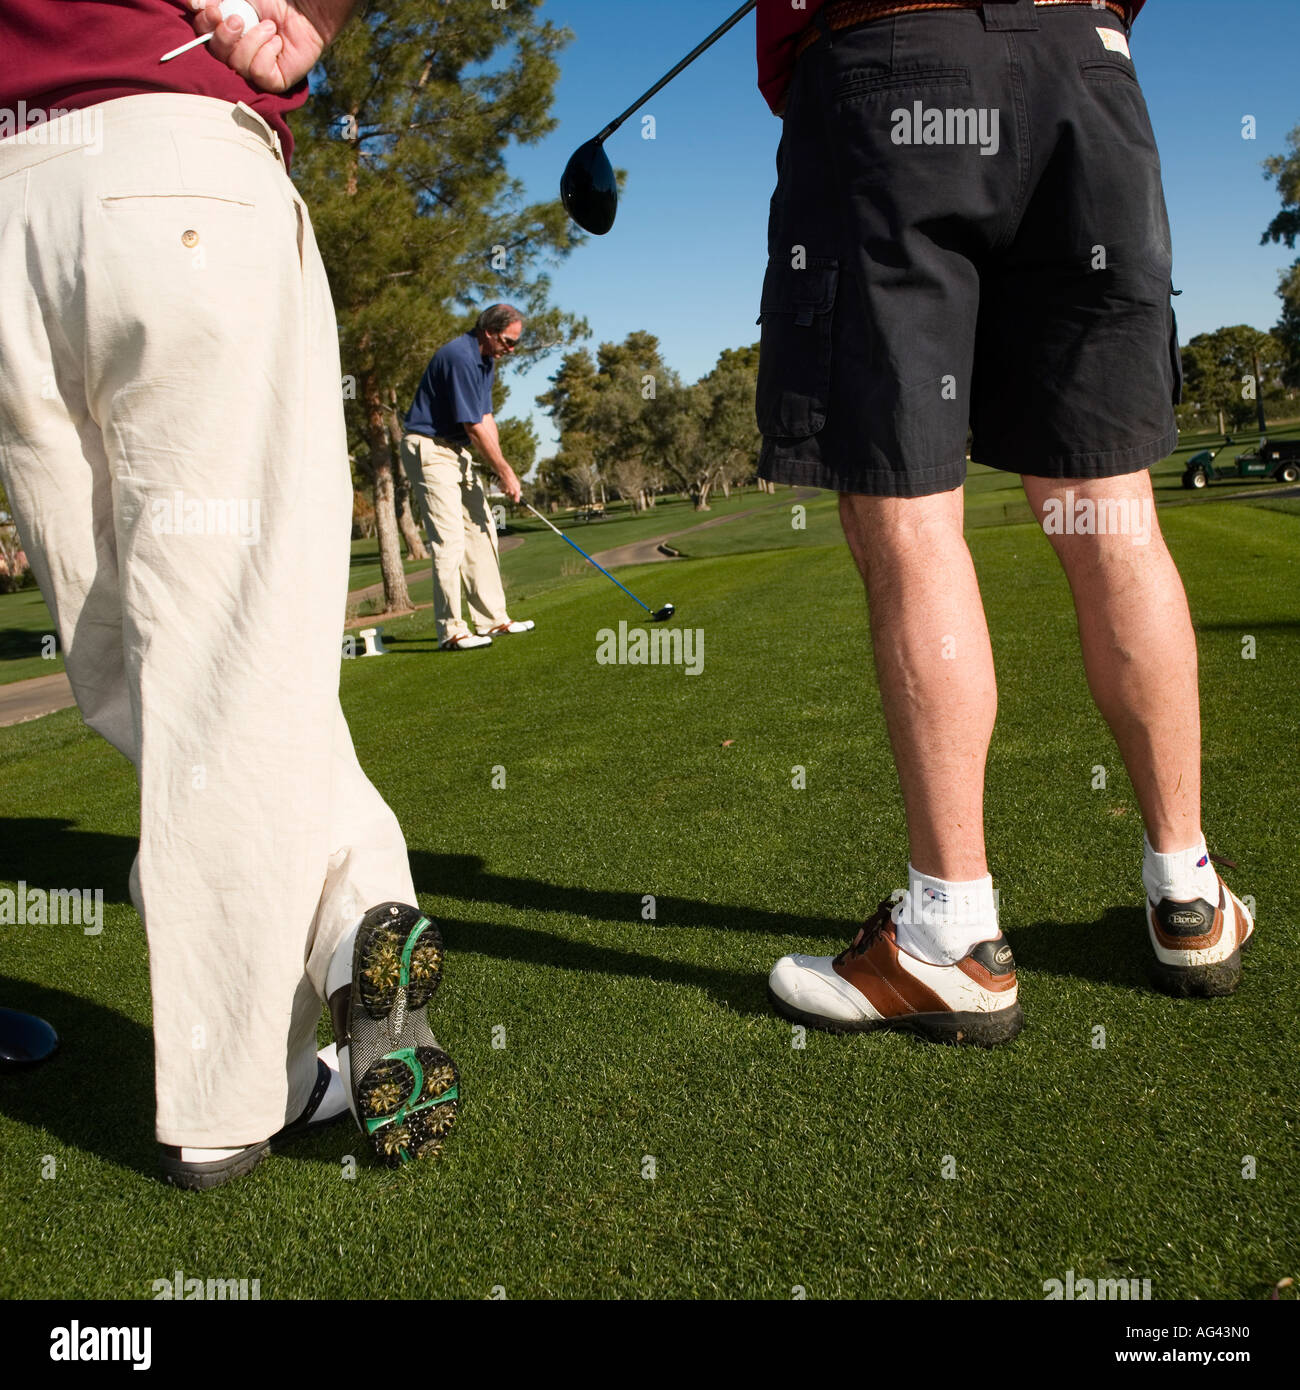 golf waiting to t off at the fairway - Stock Image